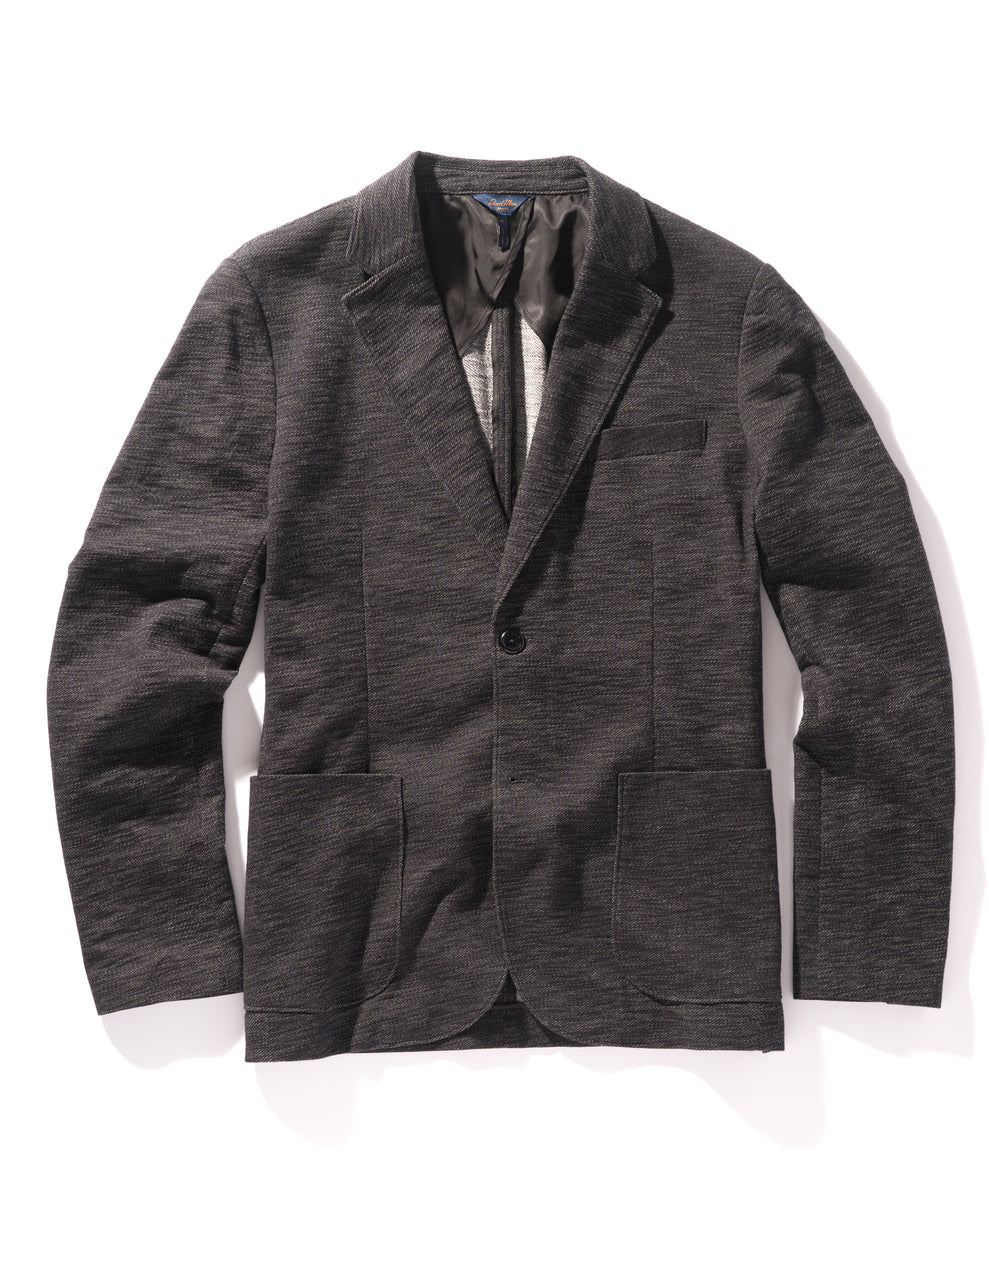 Vintage Twill Slub French Terry Soft Blazer - Black / Grey Heather - Good Man Brand - Vintage Twill Slub French Terry Soft Blazer - Black / Grey Heather